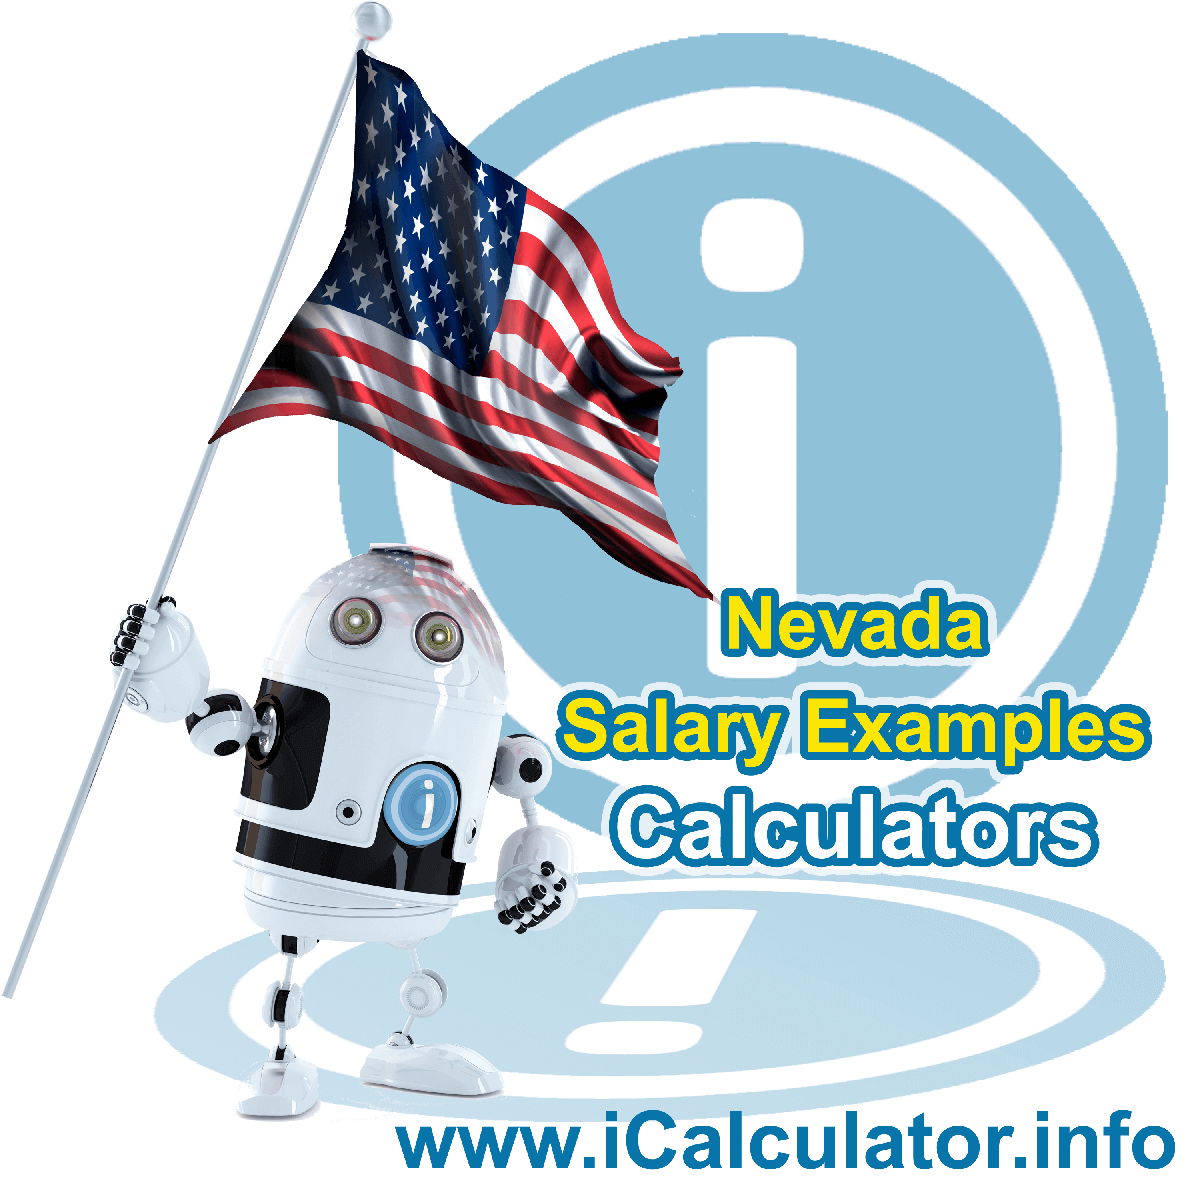 Nevada Salary Example for $135,000.00 in 2020 | iCalculator | $135,000.00 salary example for employee and employer paying Nevada State tincome taxes. Detailed salary after tax calculation including Nevada State Tax, Federal State Tax, Medicare Deductions, Social Security, Capital Gains and other income tax and salary deductions complete with supporting Nevada state tax tables